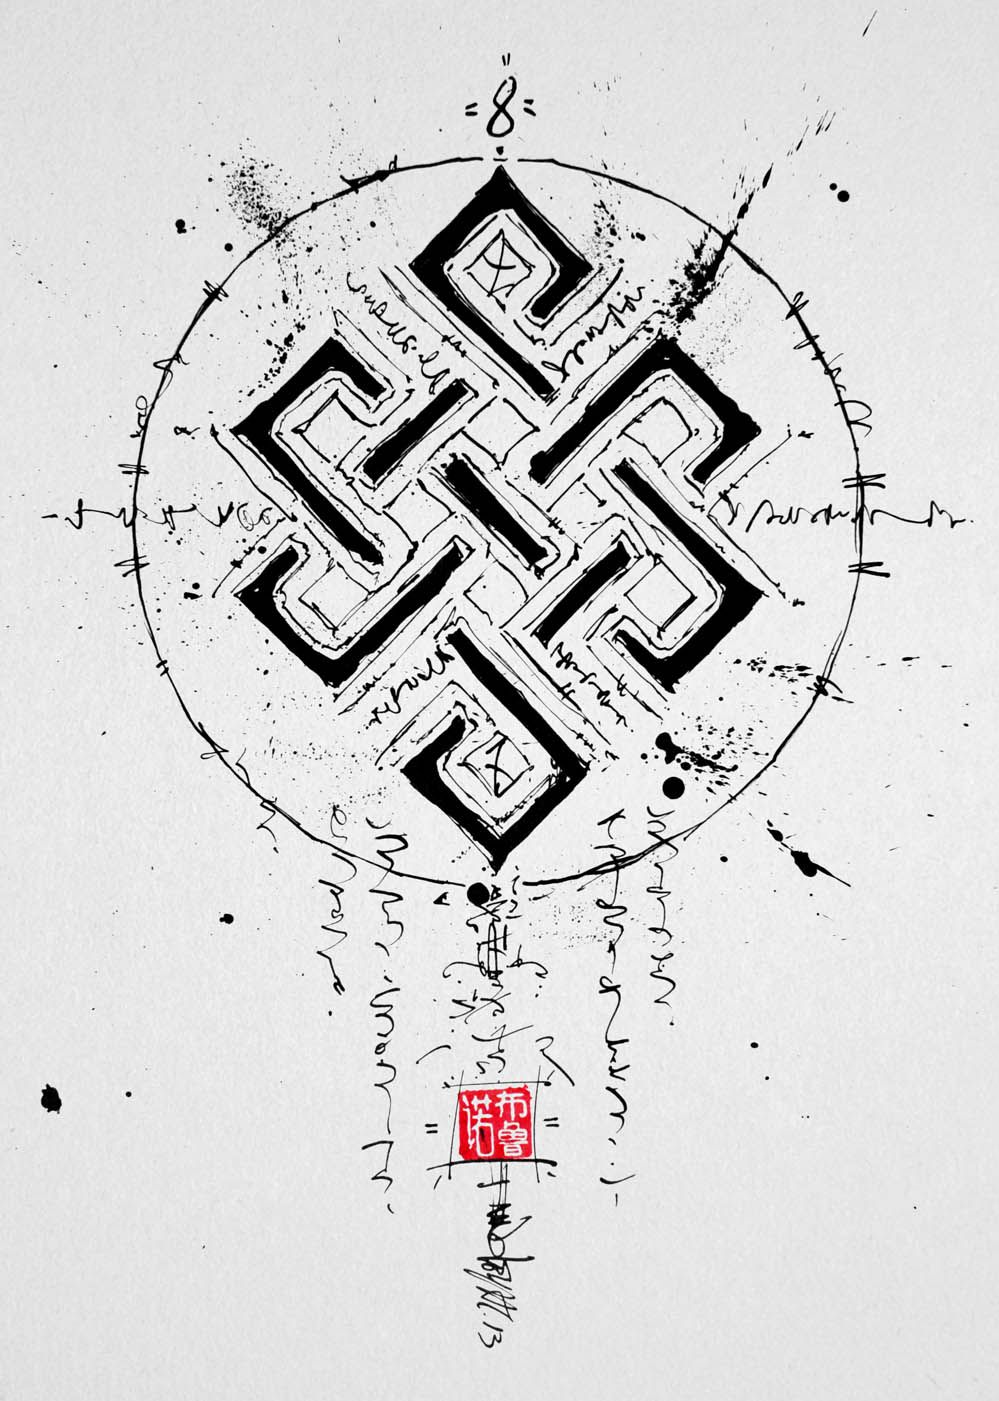 Endless knot eternity artistic pinterest tattoo tatoo endless knot eternity this is a good pattern for a garden or a garden around a long house biocorpaavc Gallery